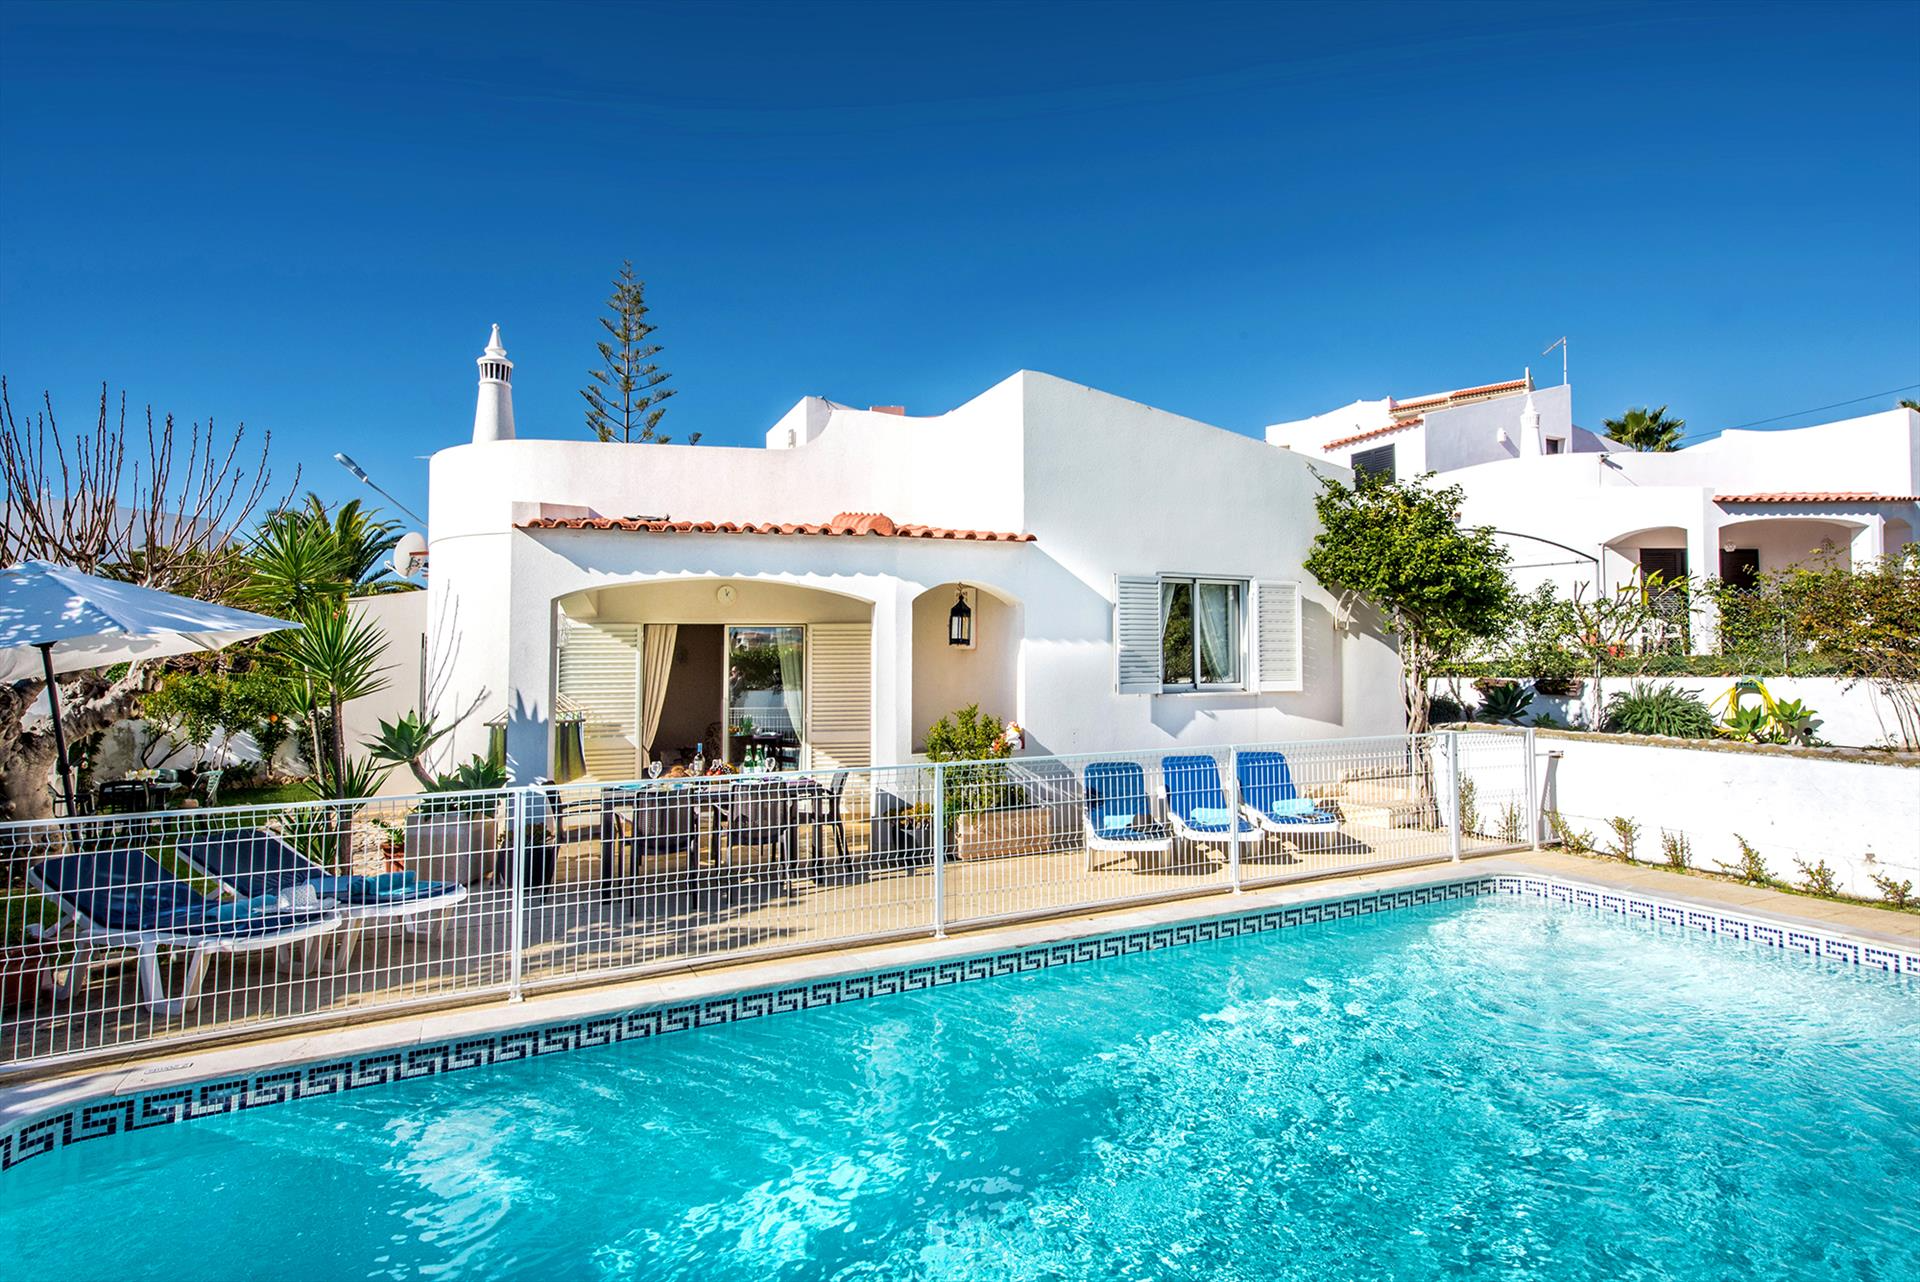 Rent child friendly holiday Villa Albufeira VT110 with fenced heated pool in Albufeira